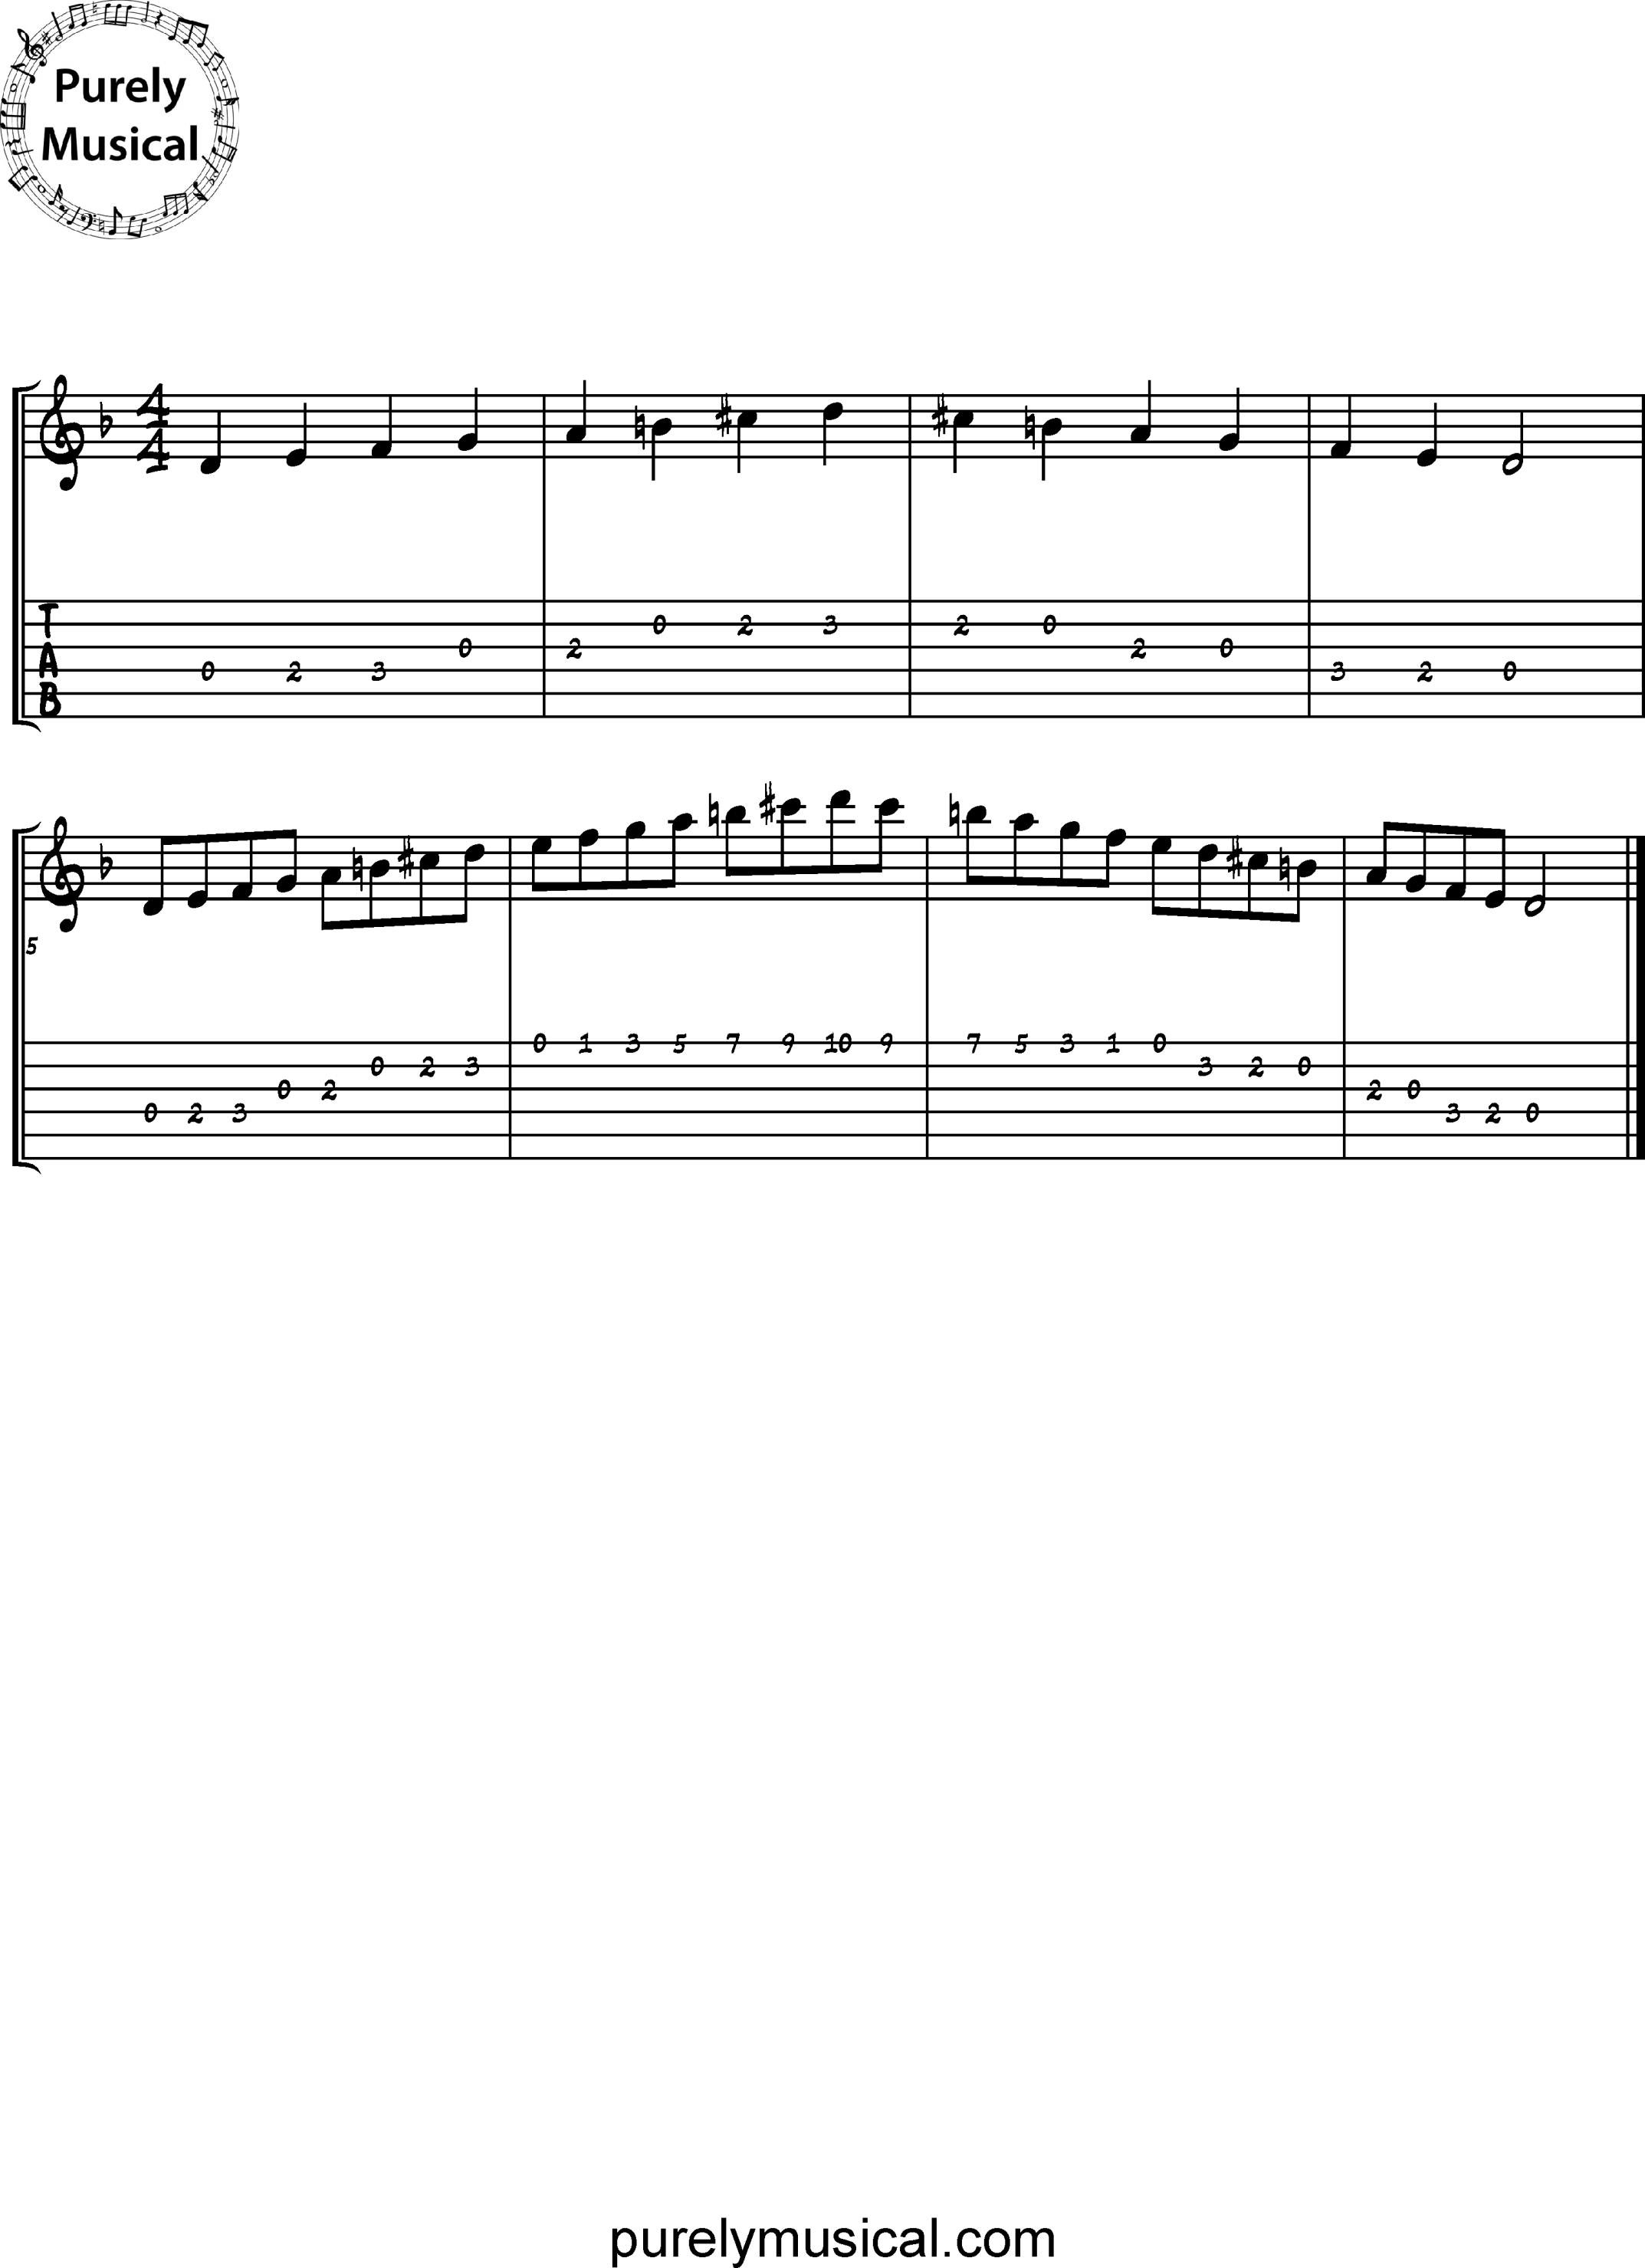 Beginner  Scale D Melodic Minor